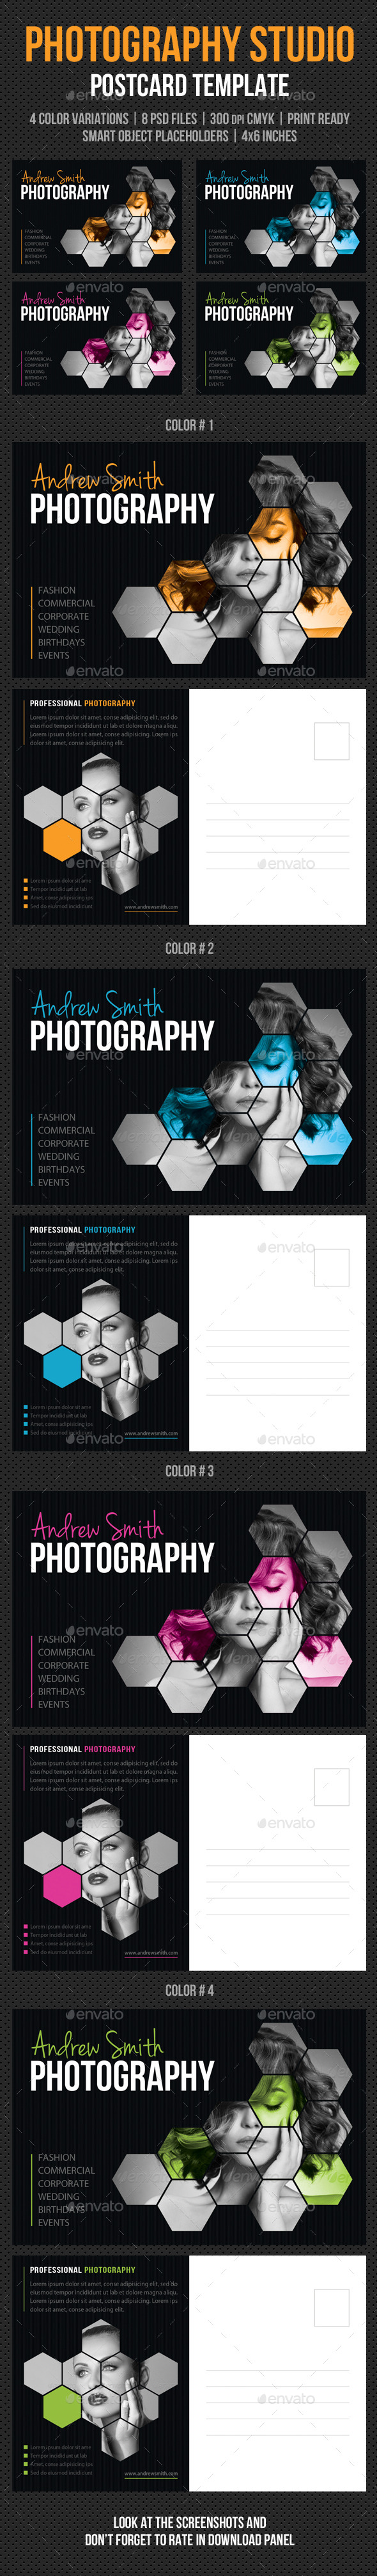 GraphicRiver Photography Studio Postcard Template V01 9806734